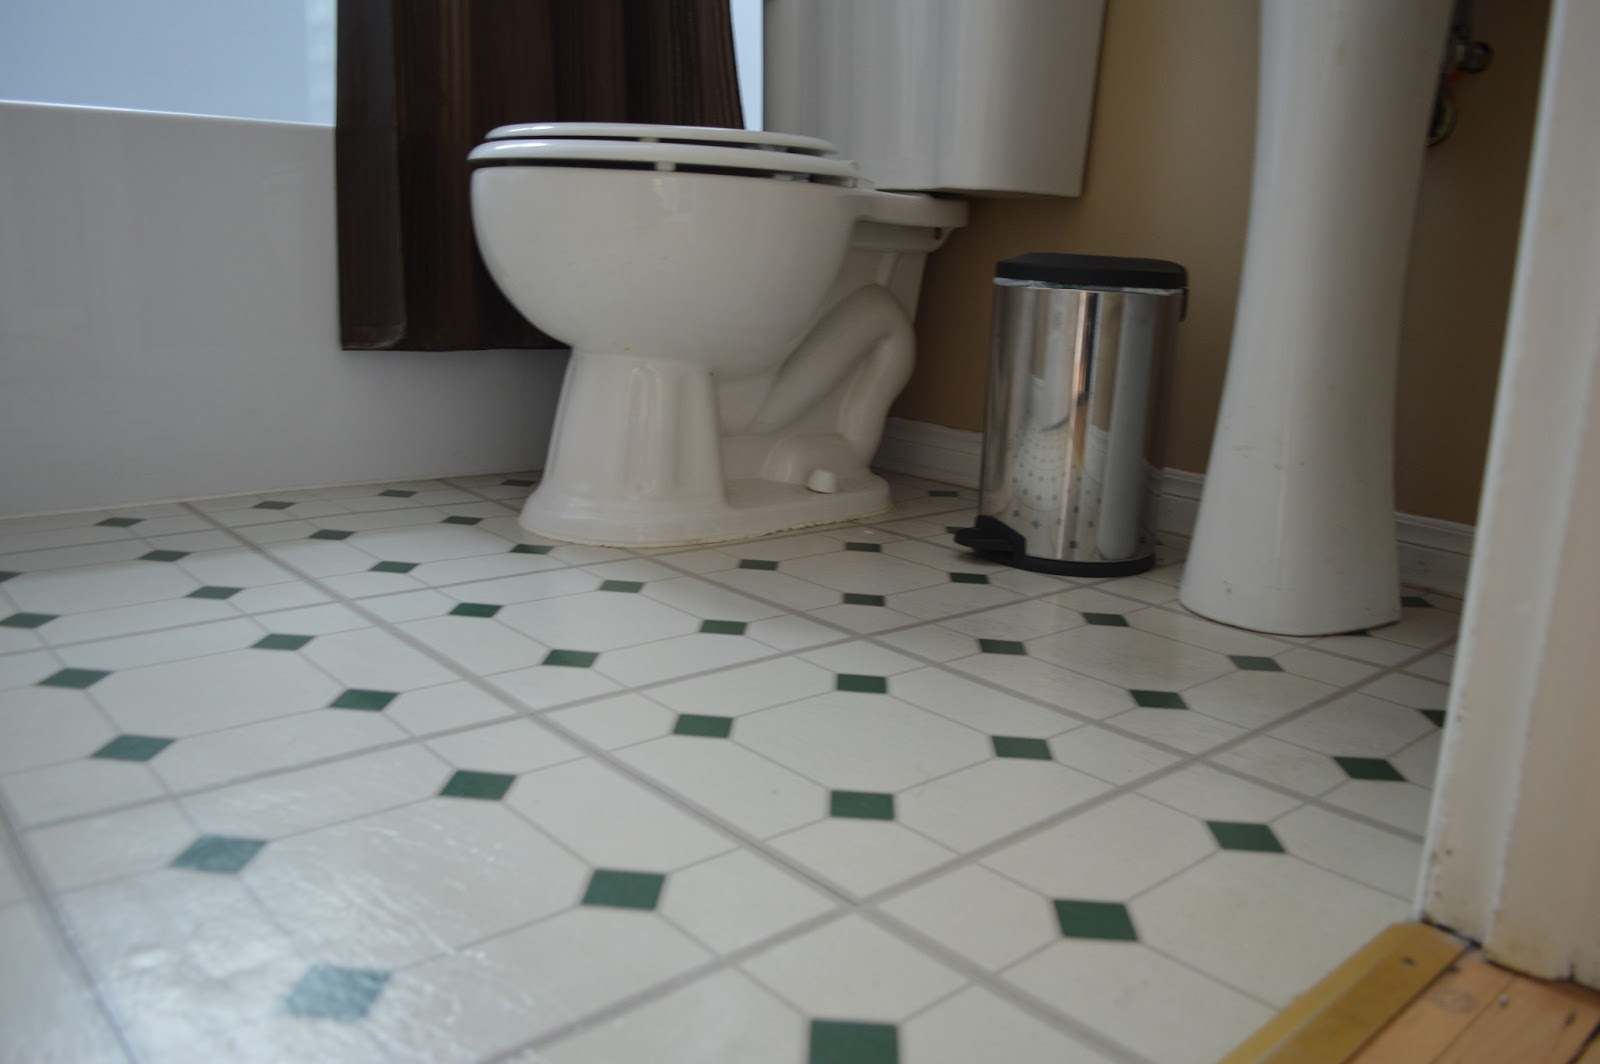 Tile Grout Turns White